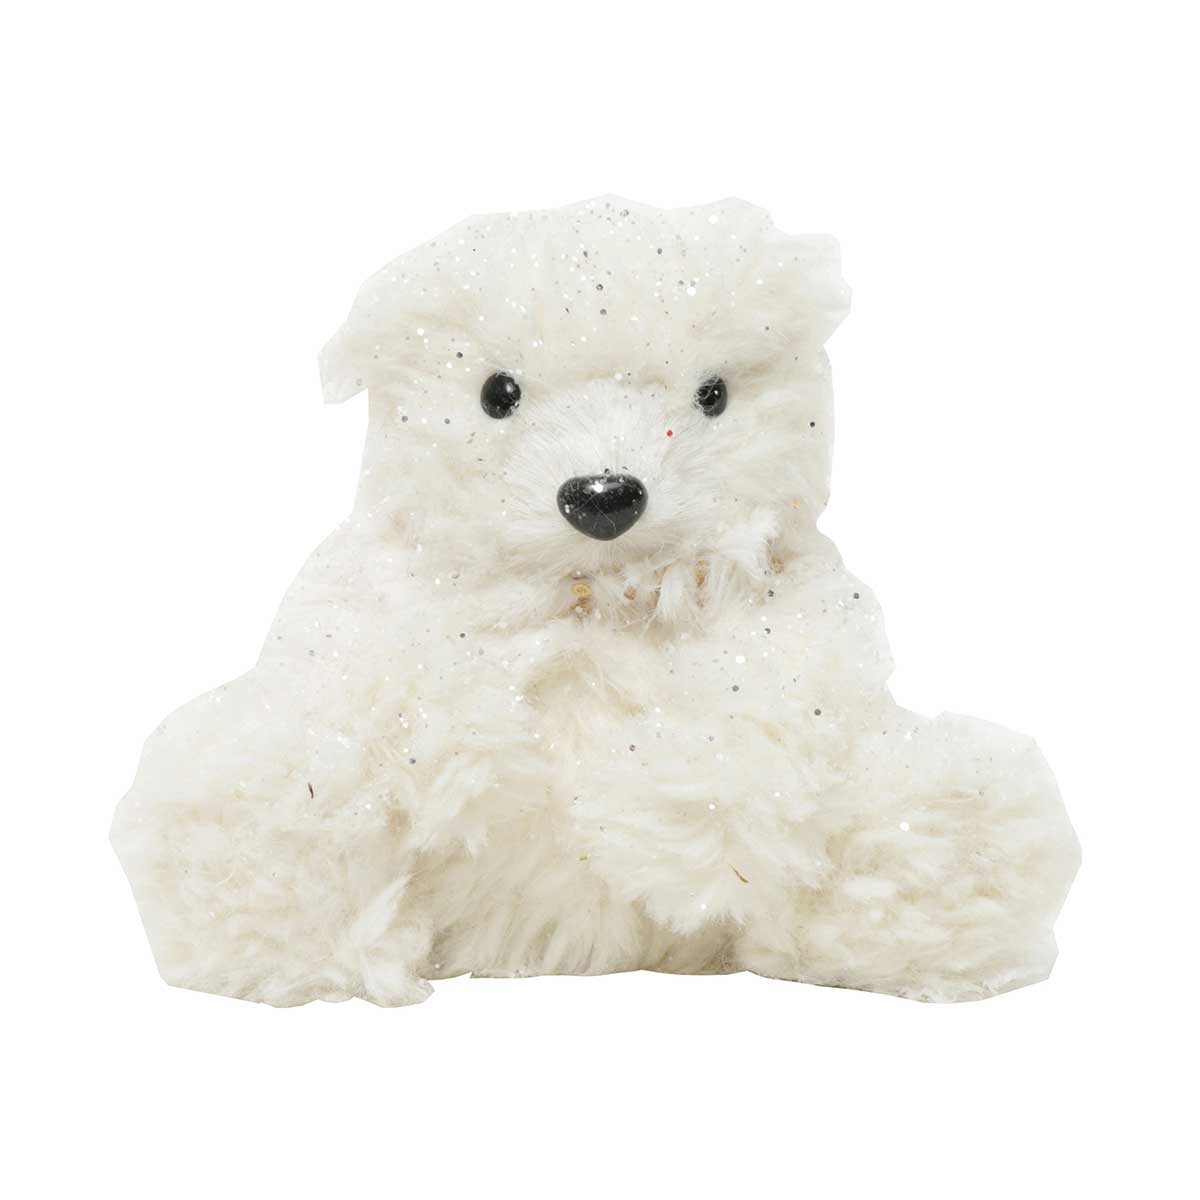 "POLAR BEAR BABY 4.5"" FURRY"